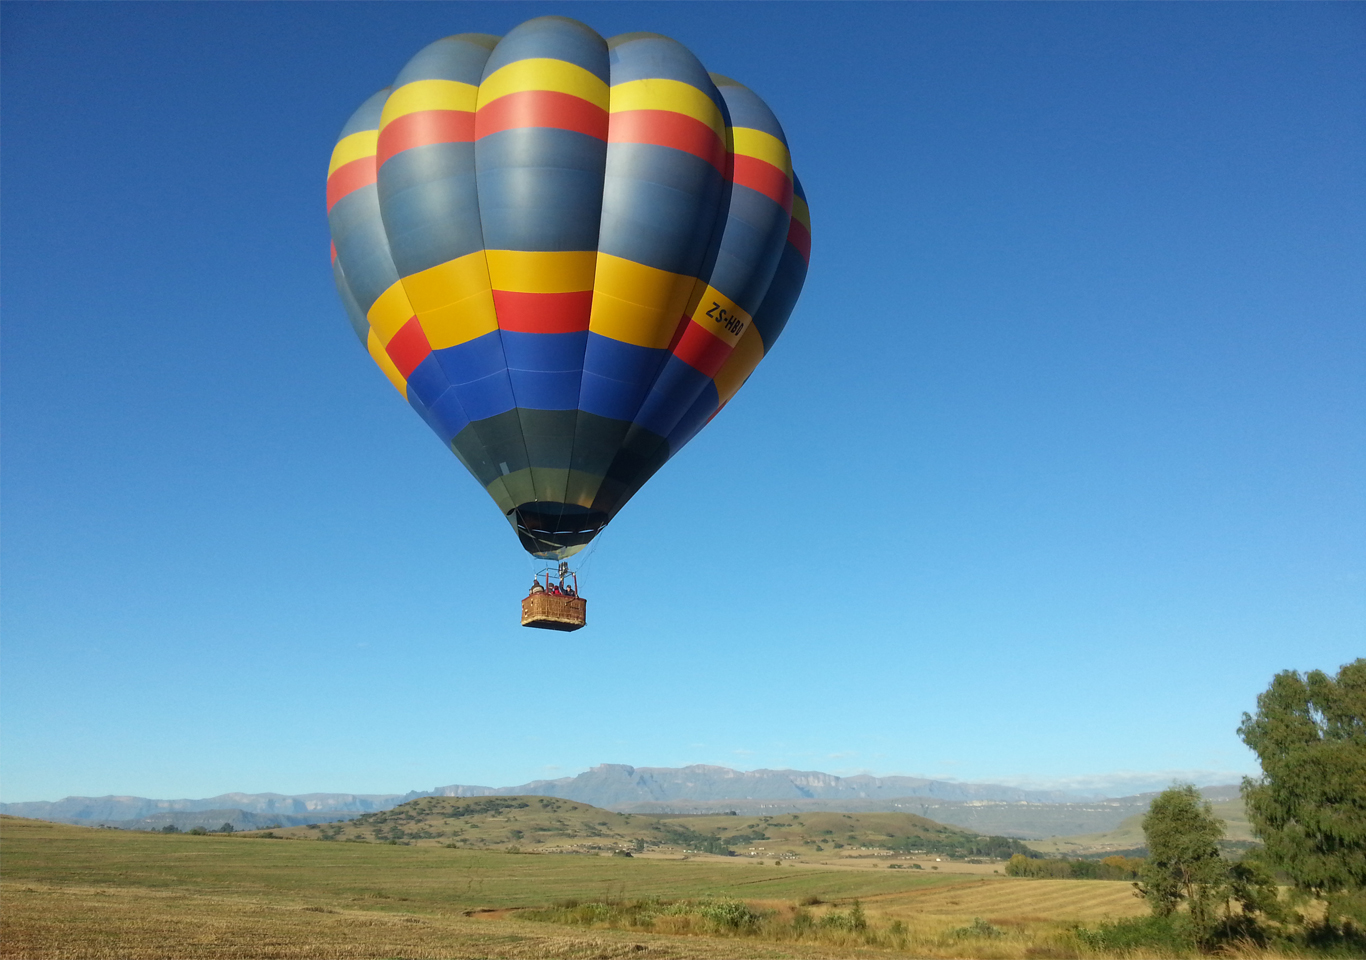 A beautiful morning for hot air ballooning.